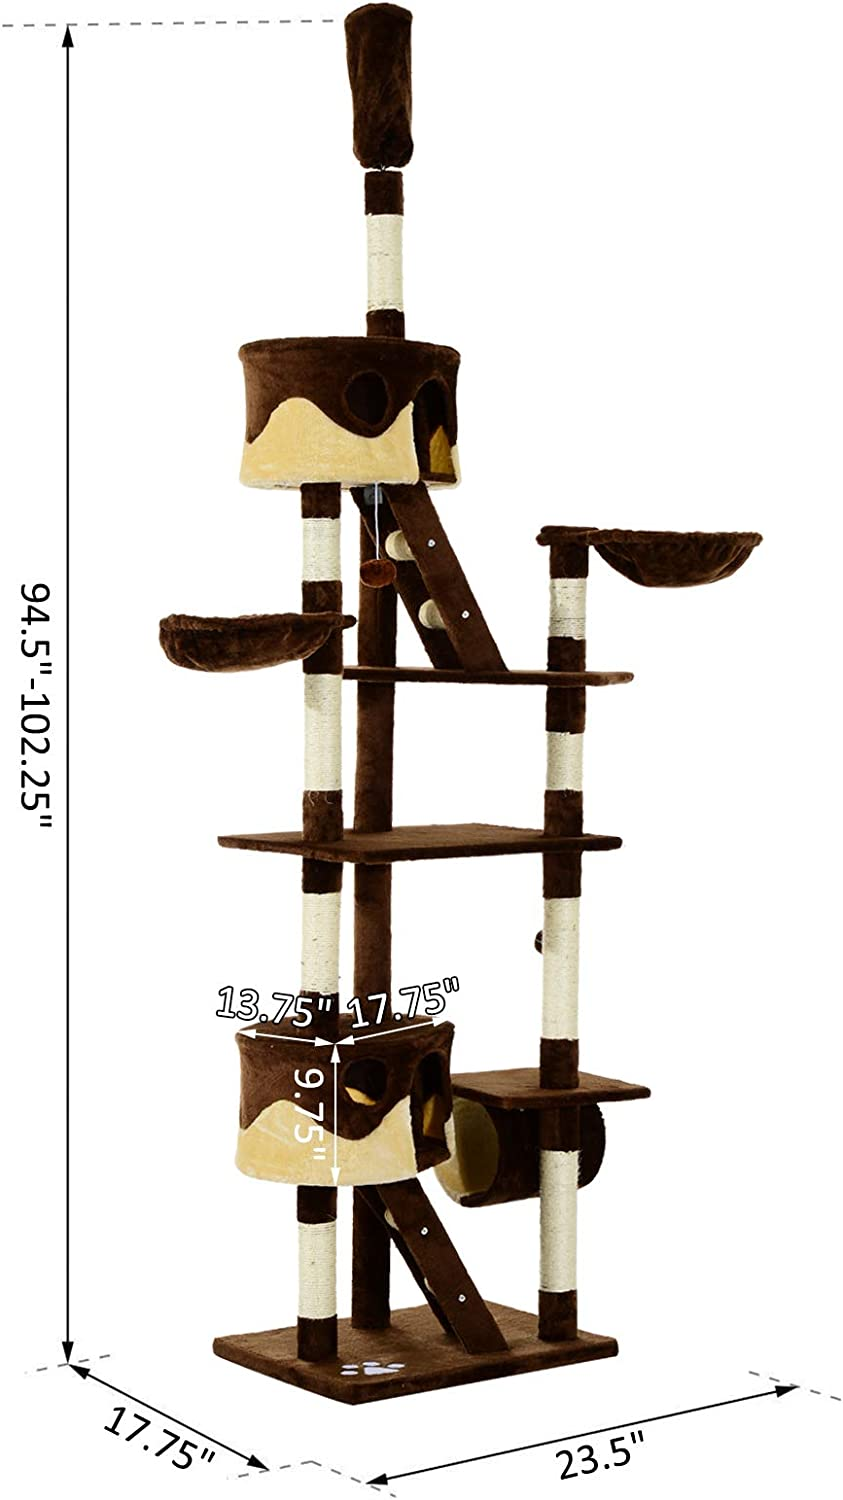 Pawhut 94 102 Huge Cat Tree Ceiling High Cat Condo Scratching Post Activity Center Multi Level Play House Brown Amazon Ca Pet Supplies